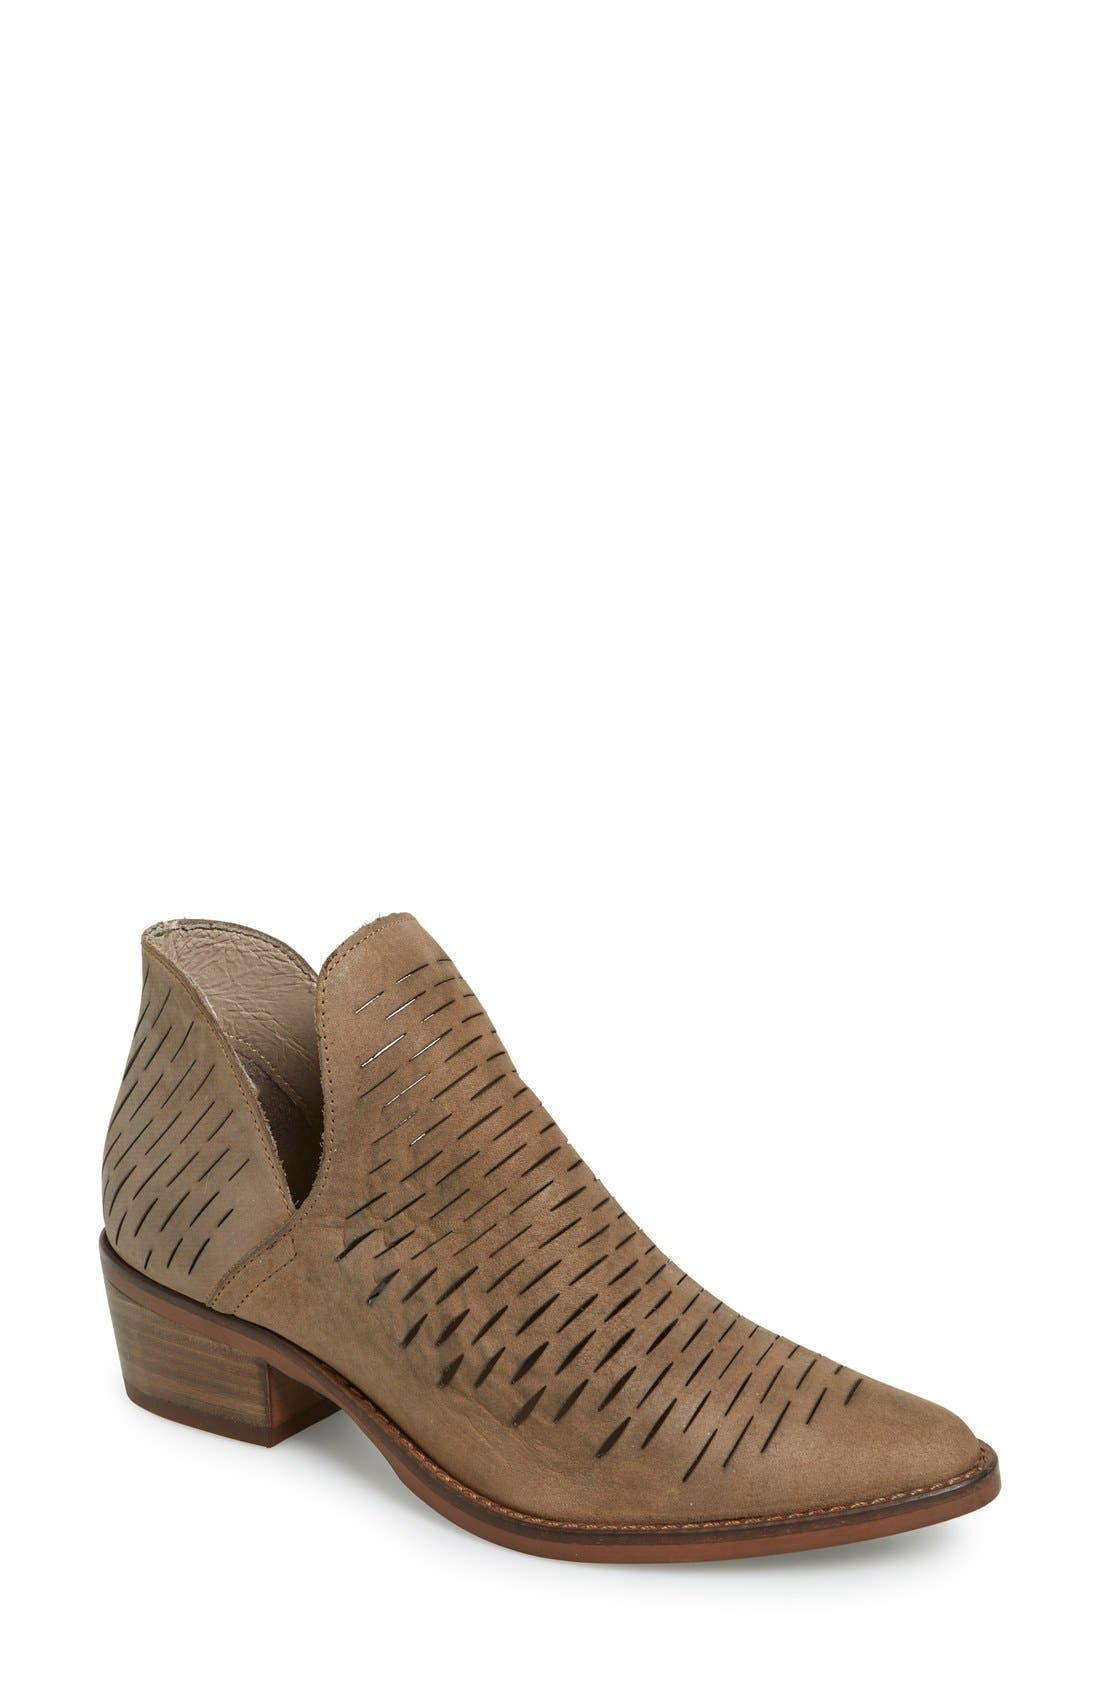 'Arowe' Perforated Bootie,                             Main thumbnail 1, color,                             020